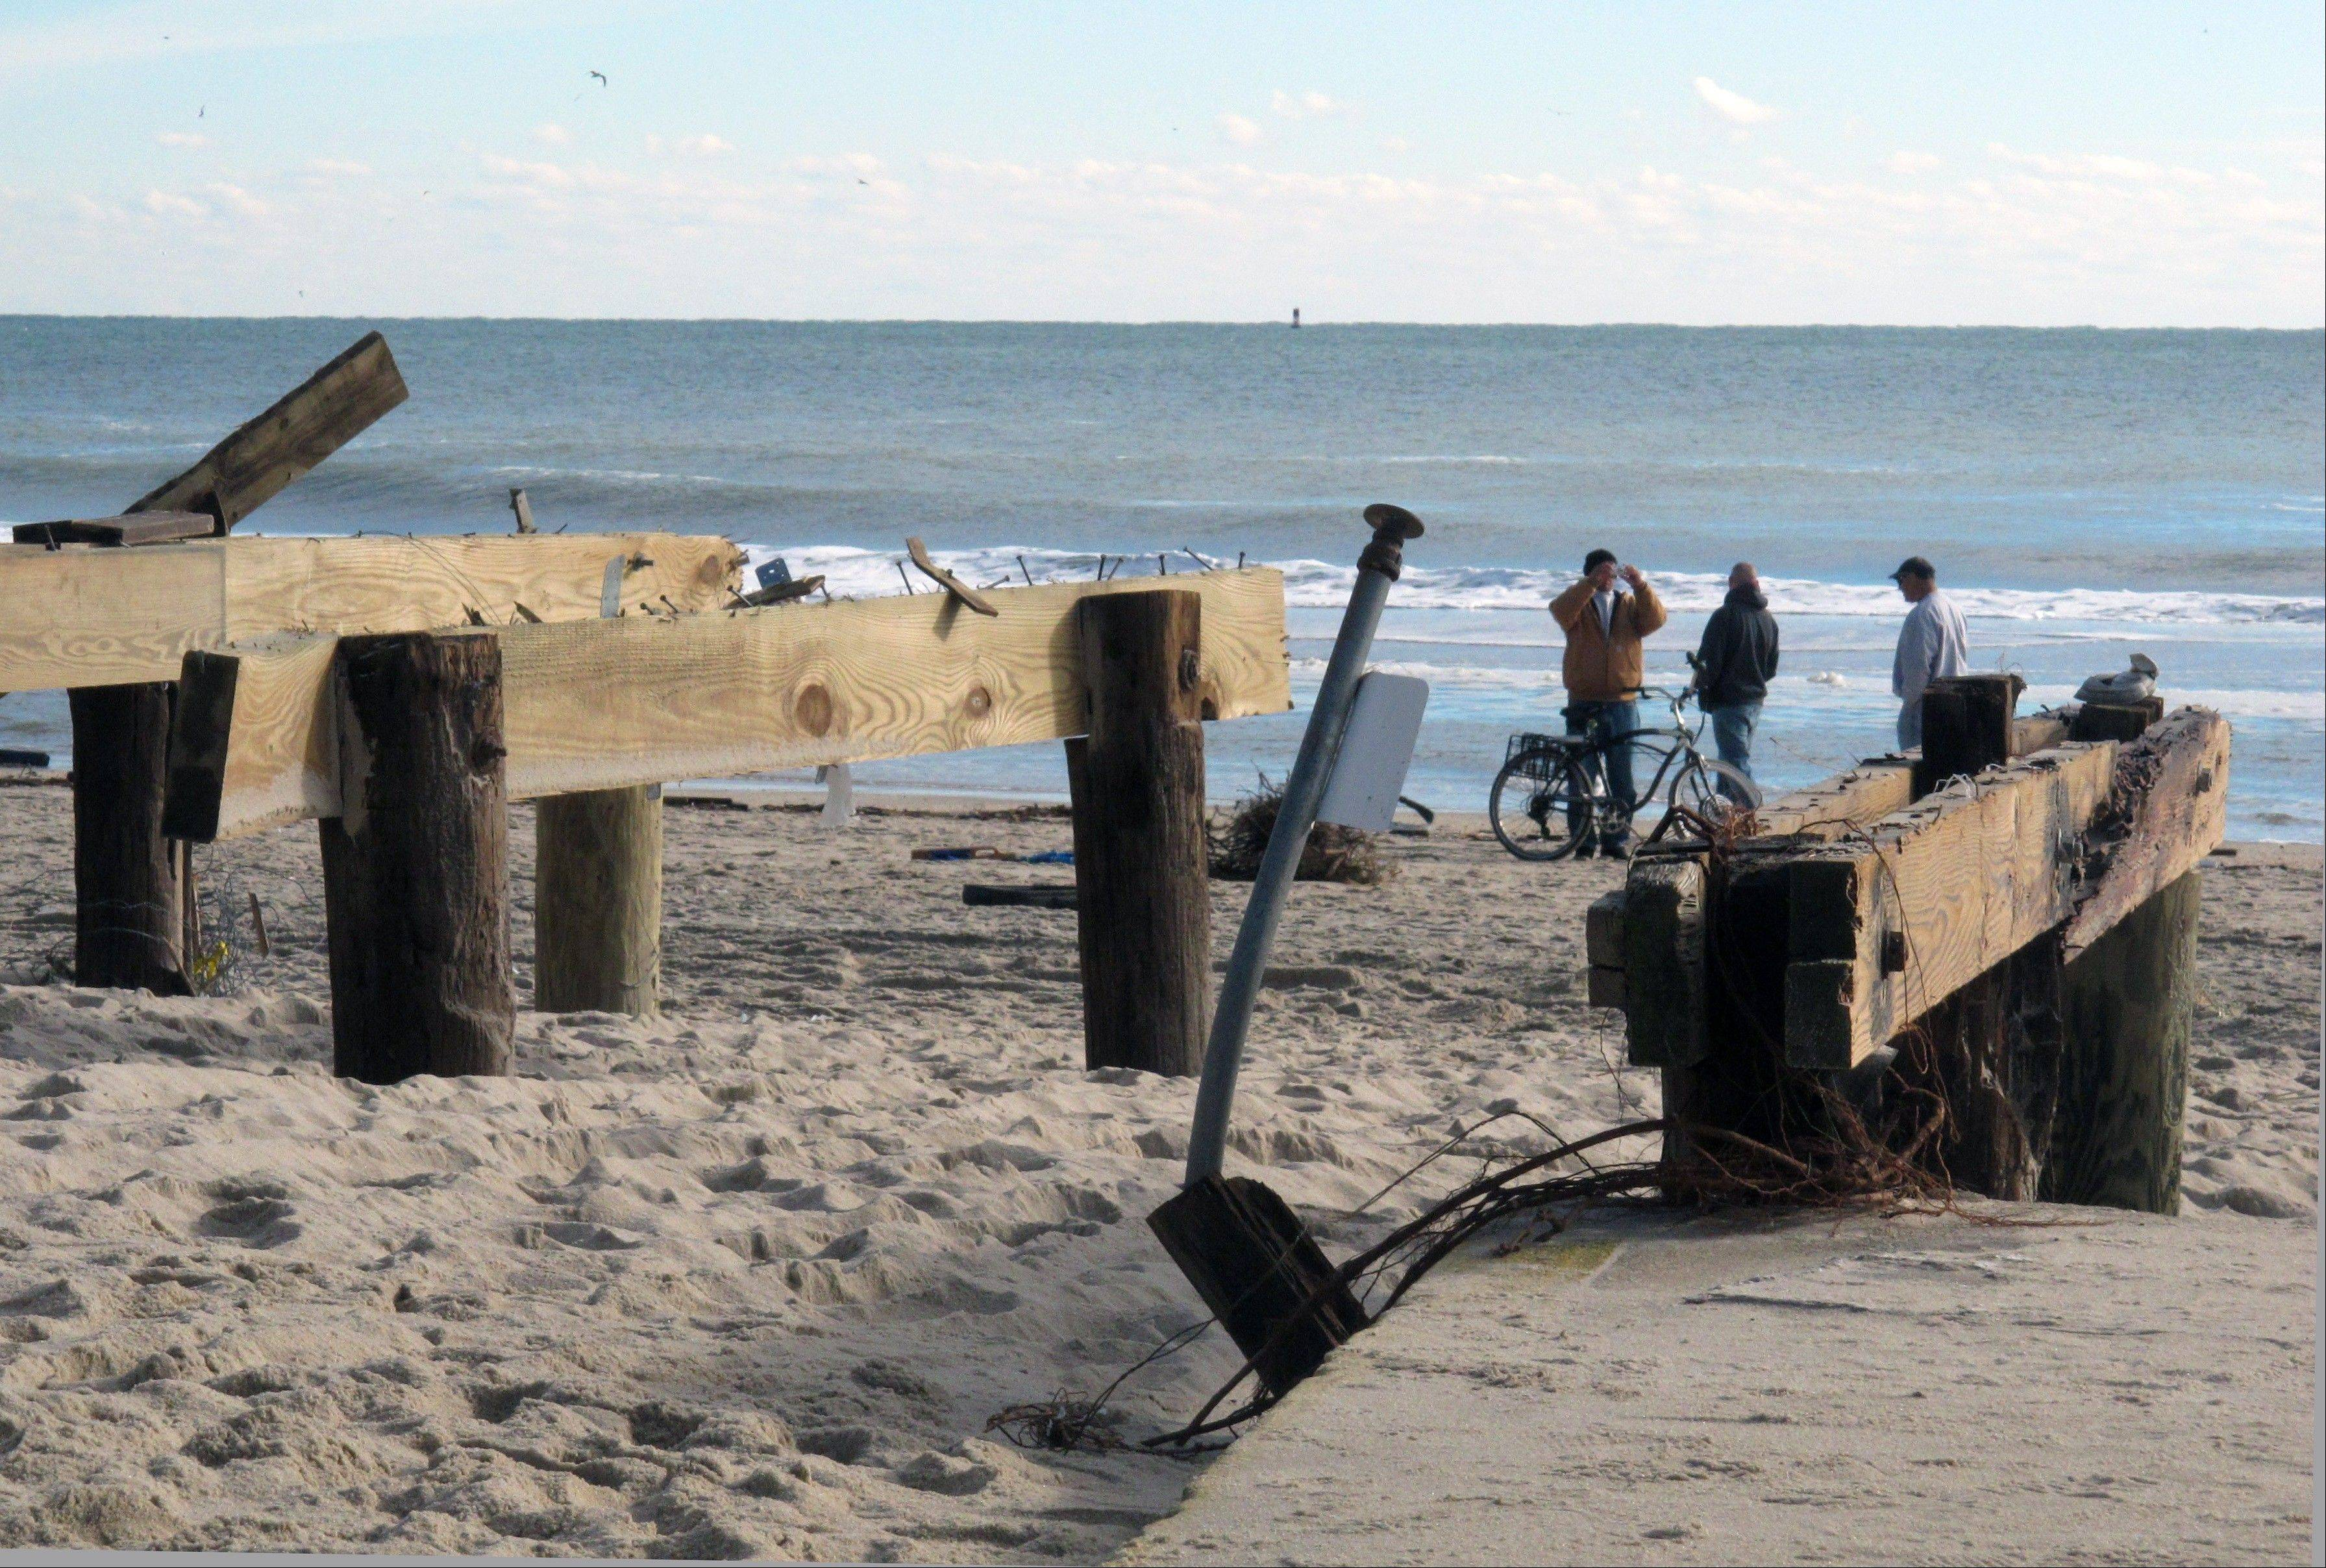 Teens on the beach at Point Pleasant Beach, N.J., next to pilings that used to support part of a boardwalk that was washed away by Superstorm Sandy. Coastal towns are racing to repair their boardwalks in time for next summer.